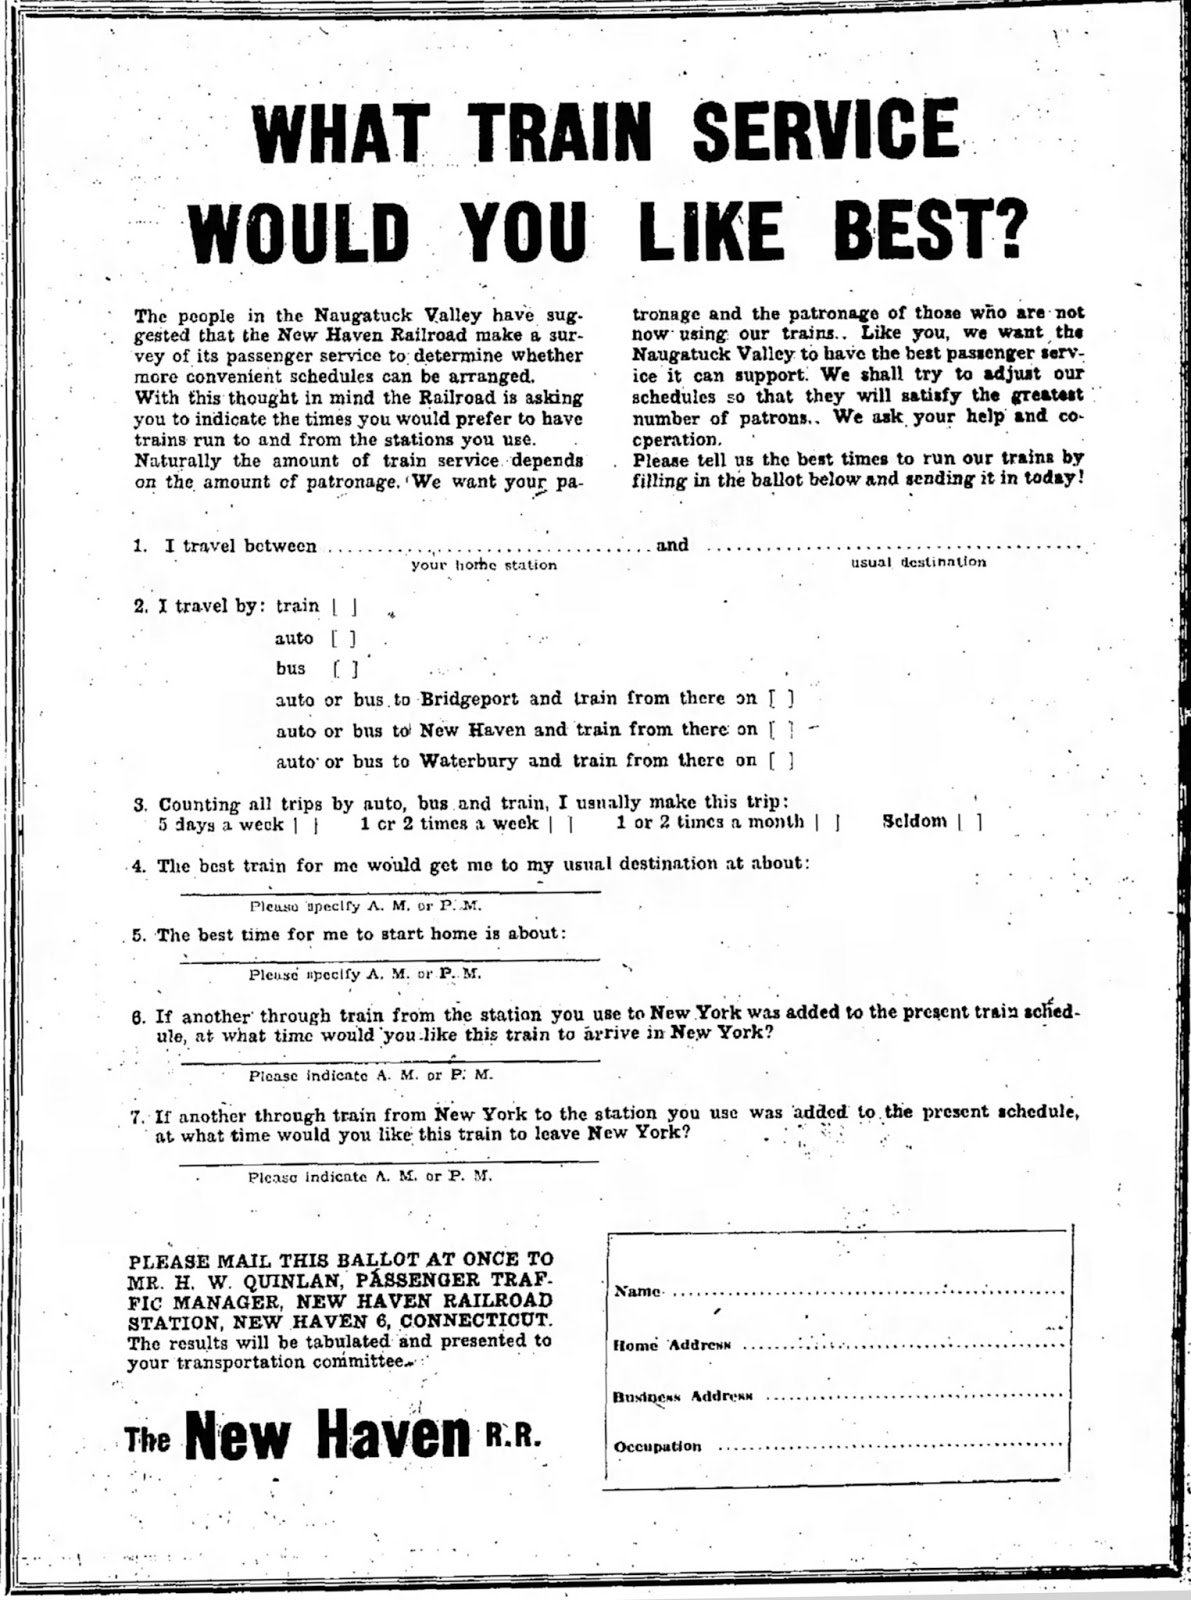 train service survey posted in the naugatuck daily news 23 april 1949